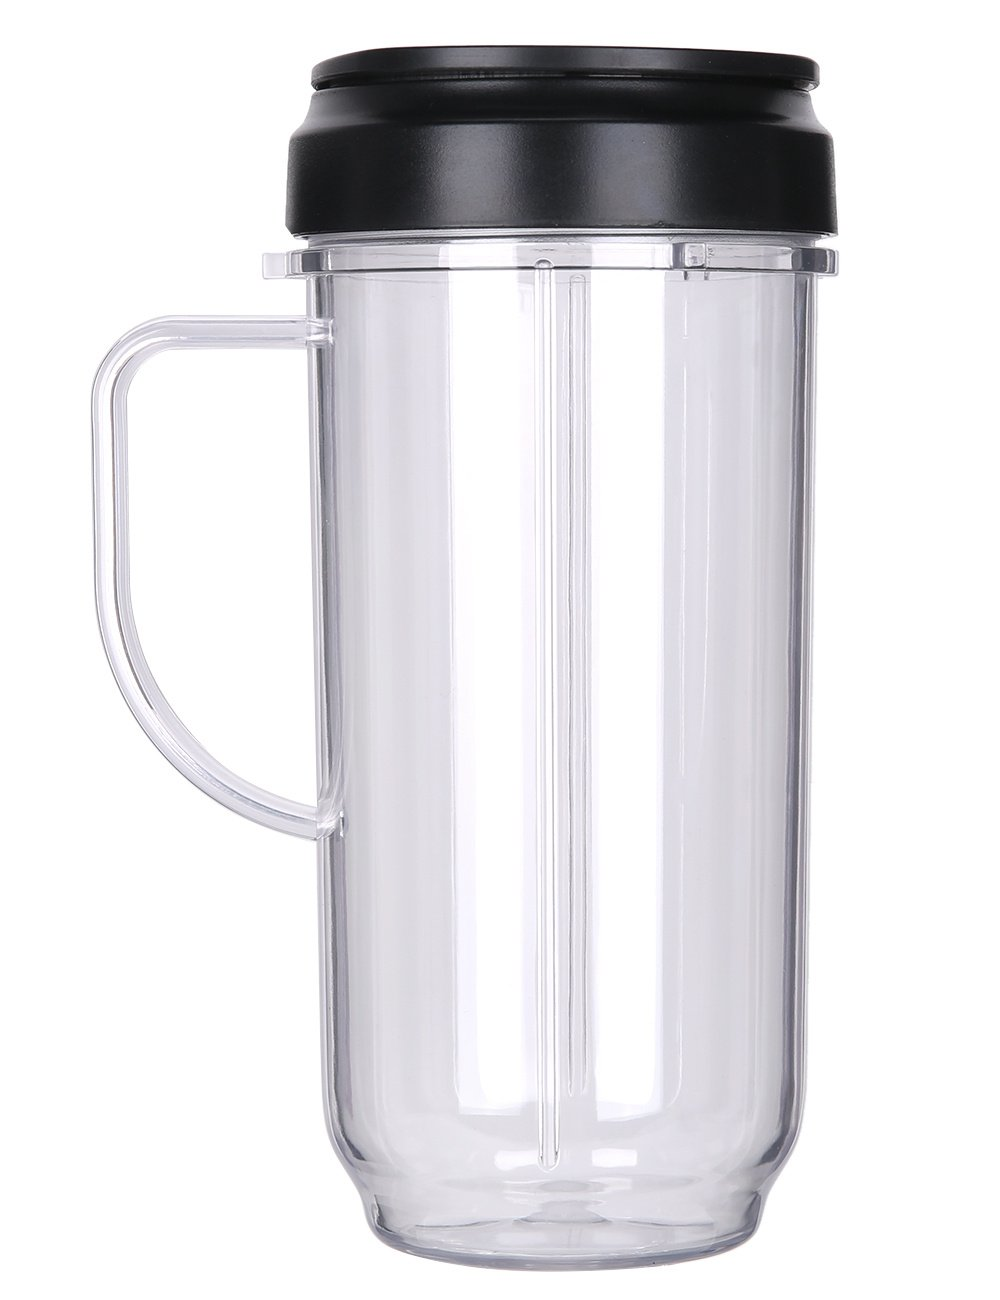 QT Replacement Part Flip Top Lid + 22oz Tall cup For 250w Magic Bullet Mugs & Cups Blender QueenTrade